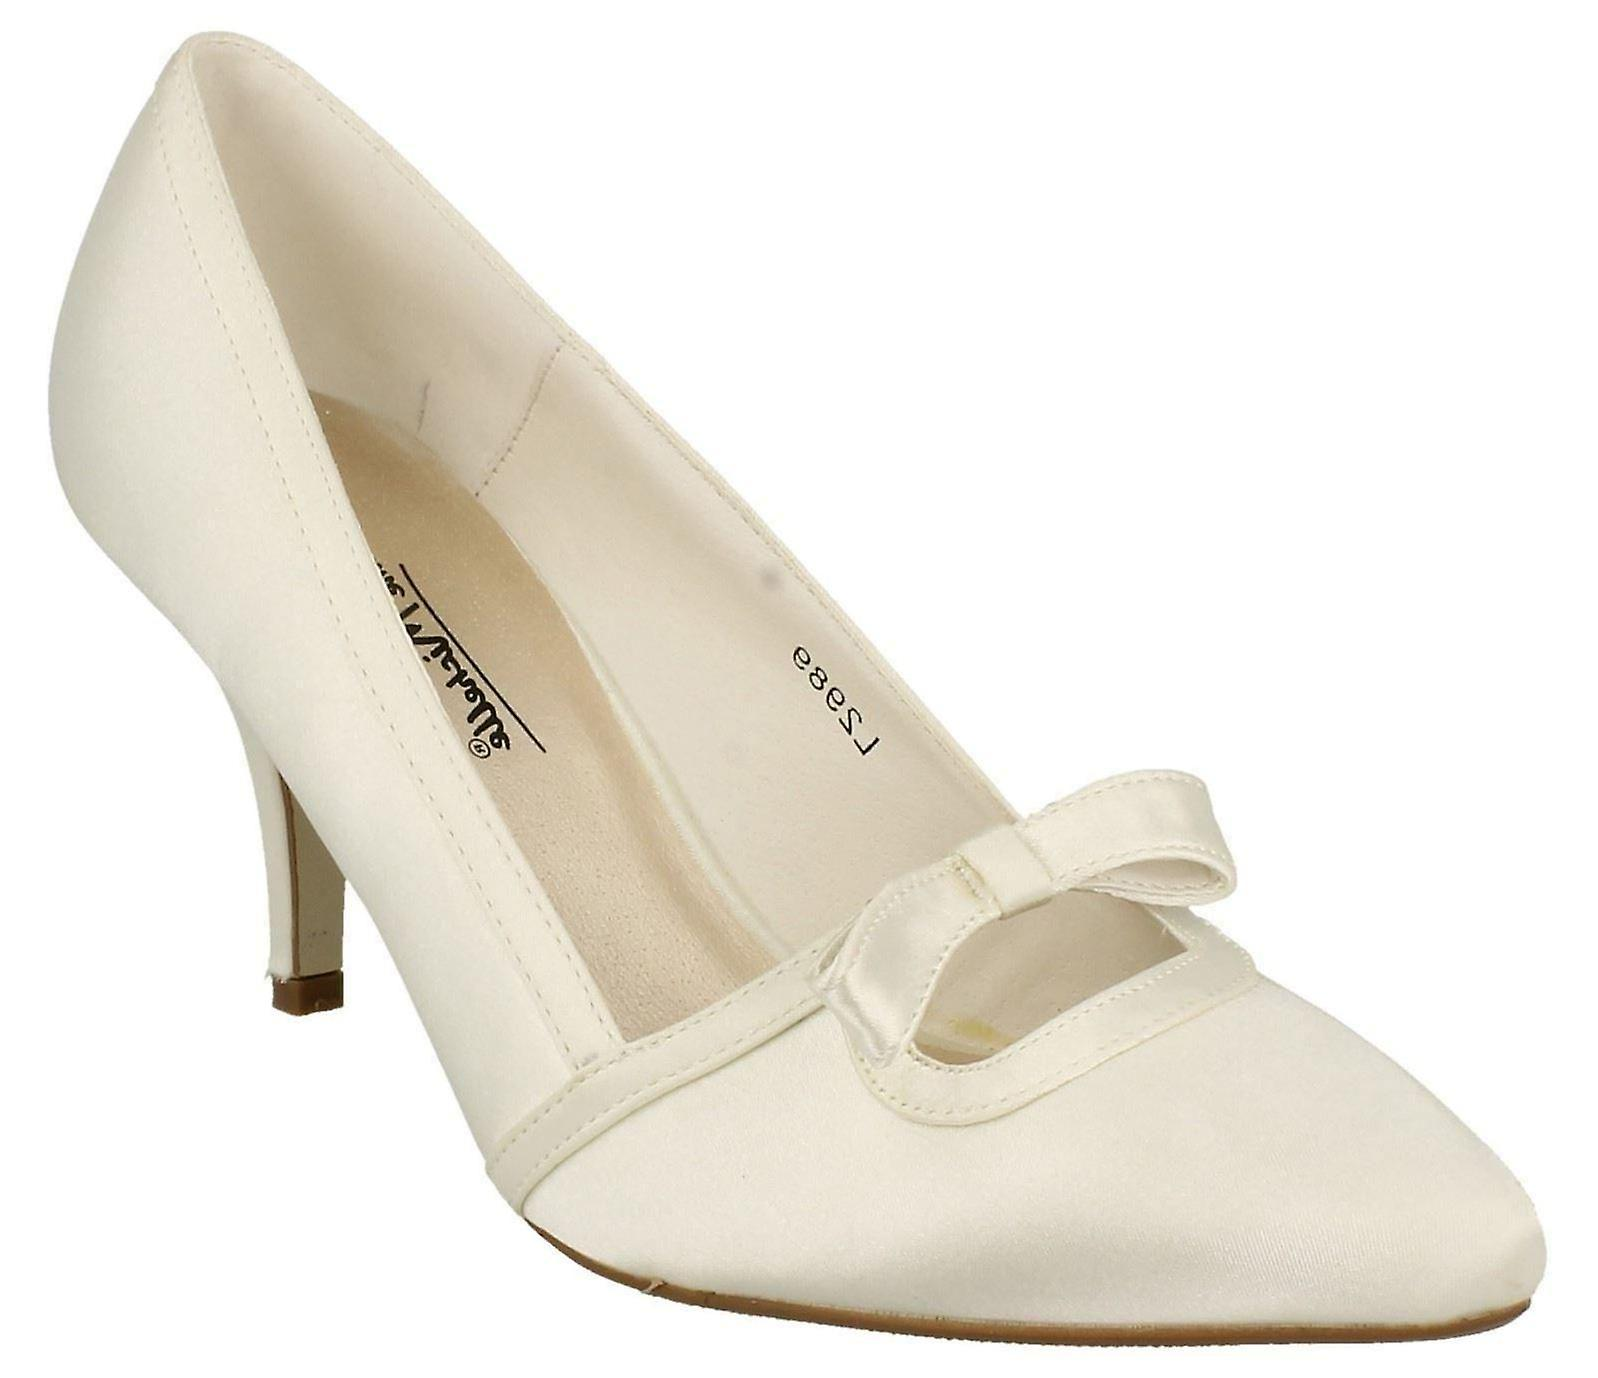 1a1c75126c9f Ladies Womens Ivory Satin Wedding Bridal Slip On Bow Courts Shoes ...